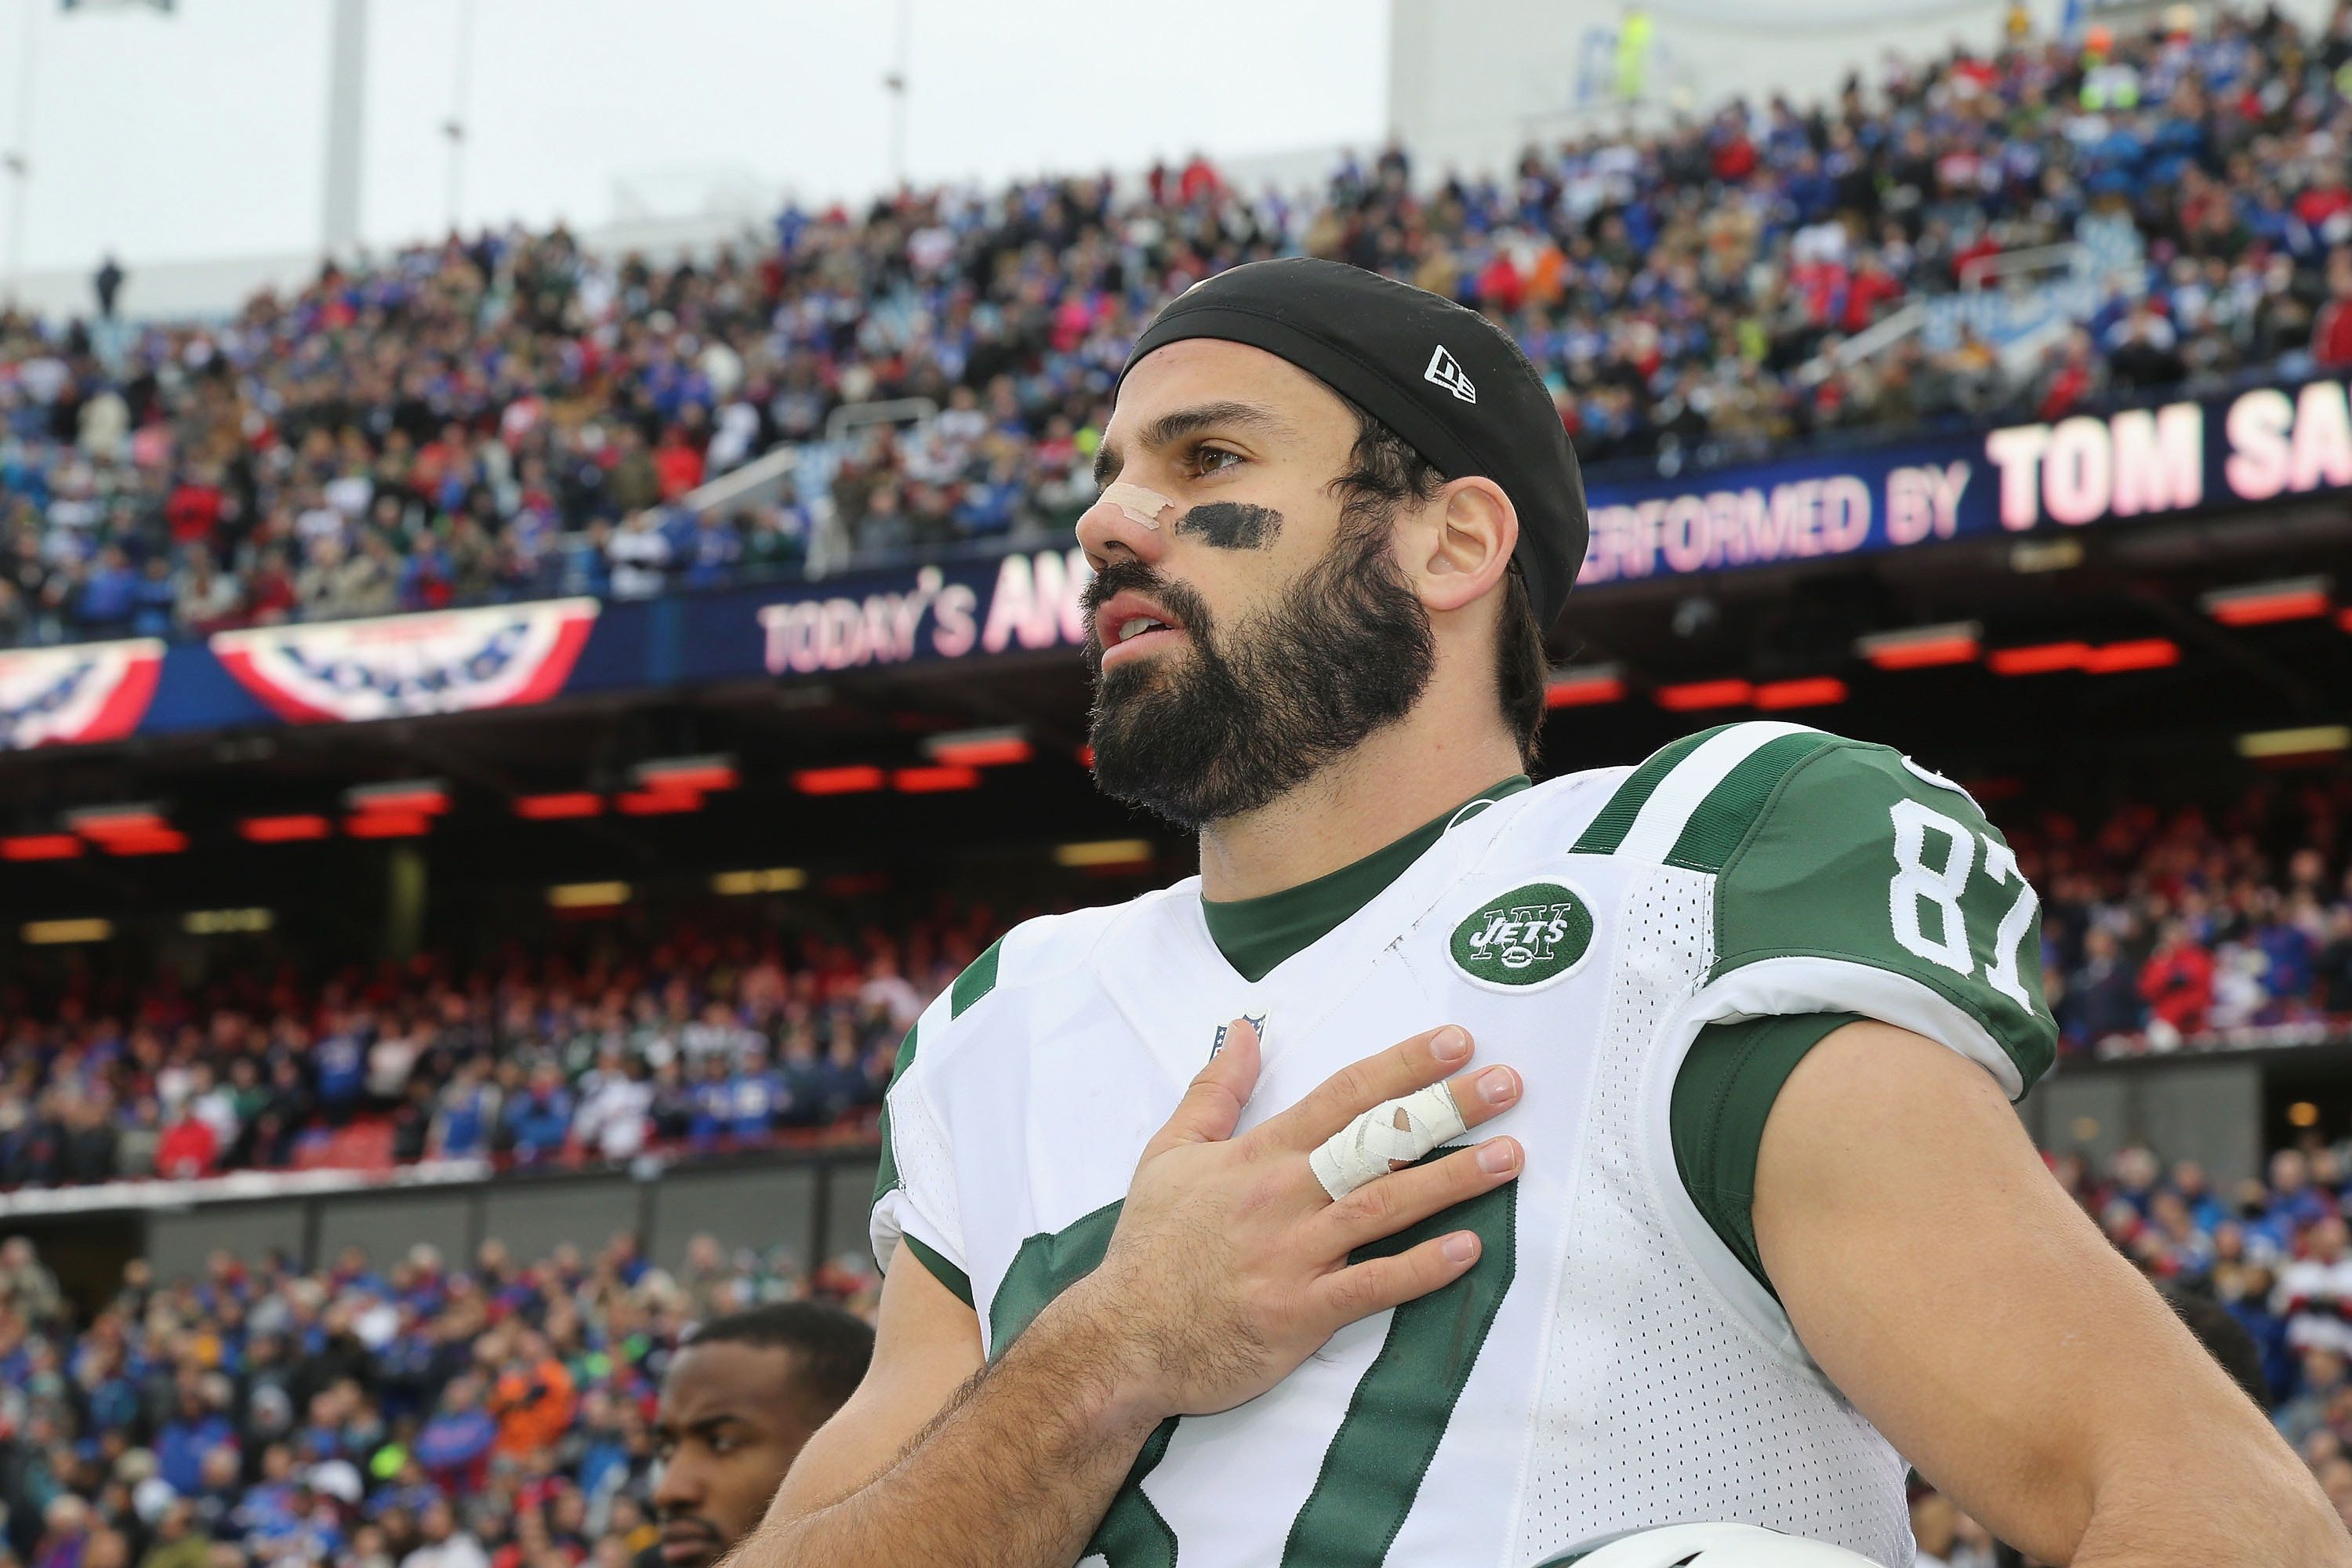 ORCHARD PARK, NY - JANUARY 03:  Wide Receiver Eric Decker #87 of the New York Jets participates in the National Anthem before the game against the Buffalo Bills at Ralph Wilson Stadium on January 3, 2016 in Orchard Park, New York.  (Photo by Al Pereira/Getty Images for New York Jets)